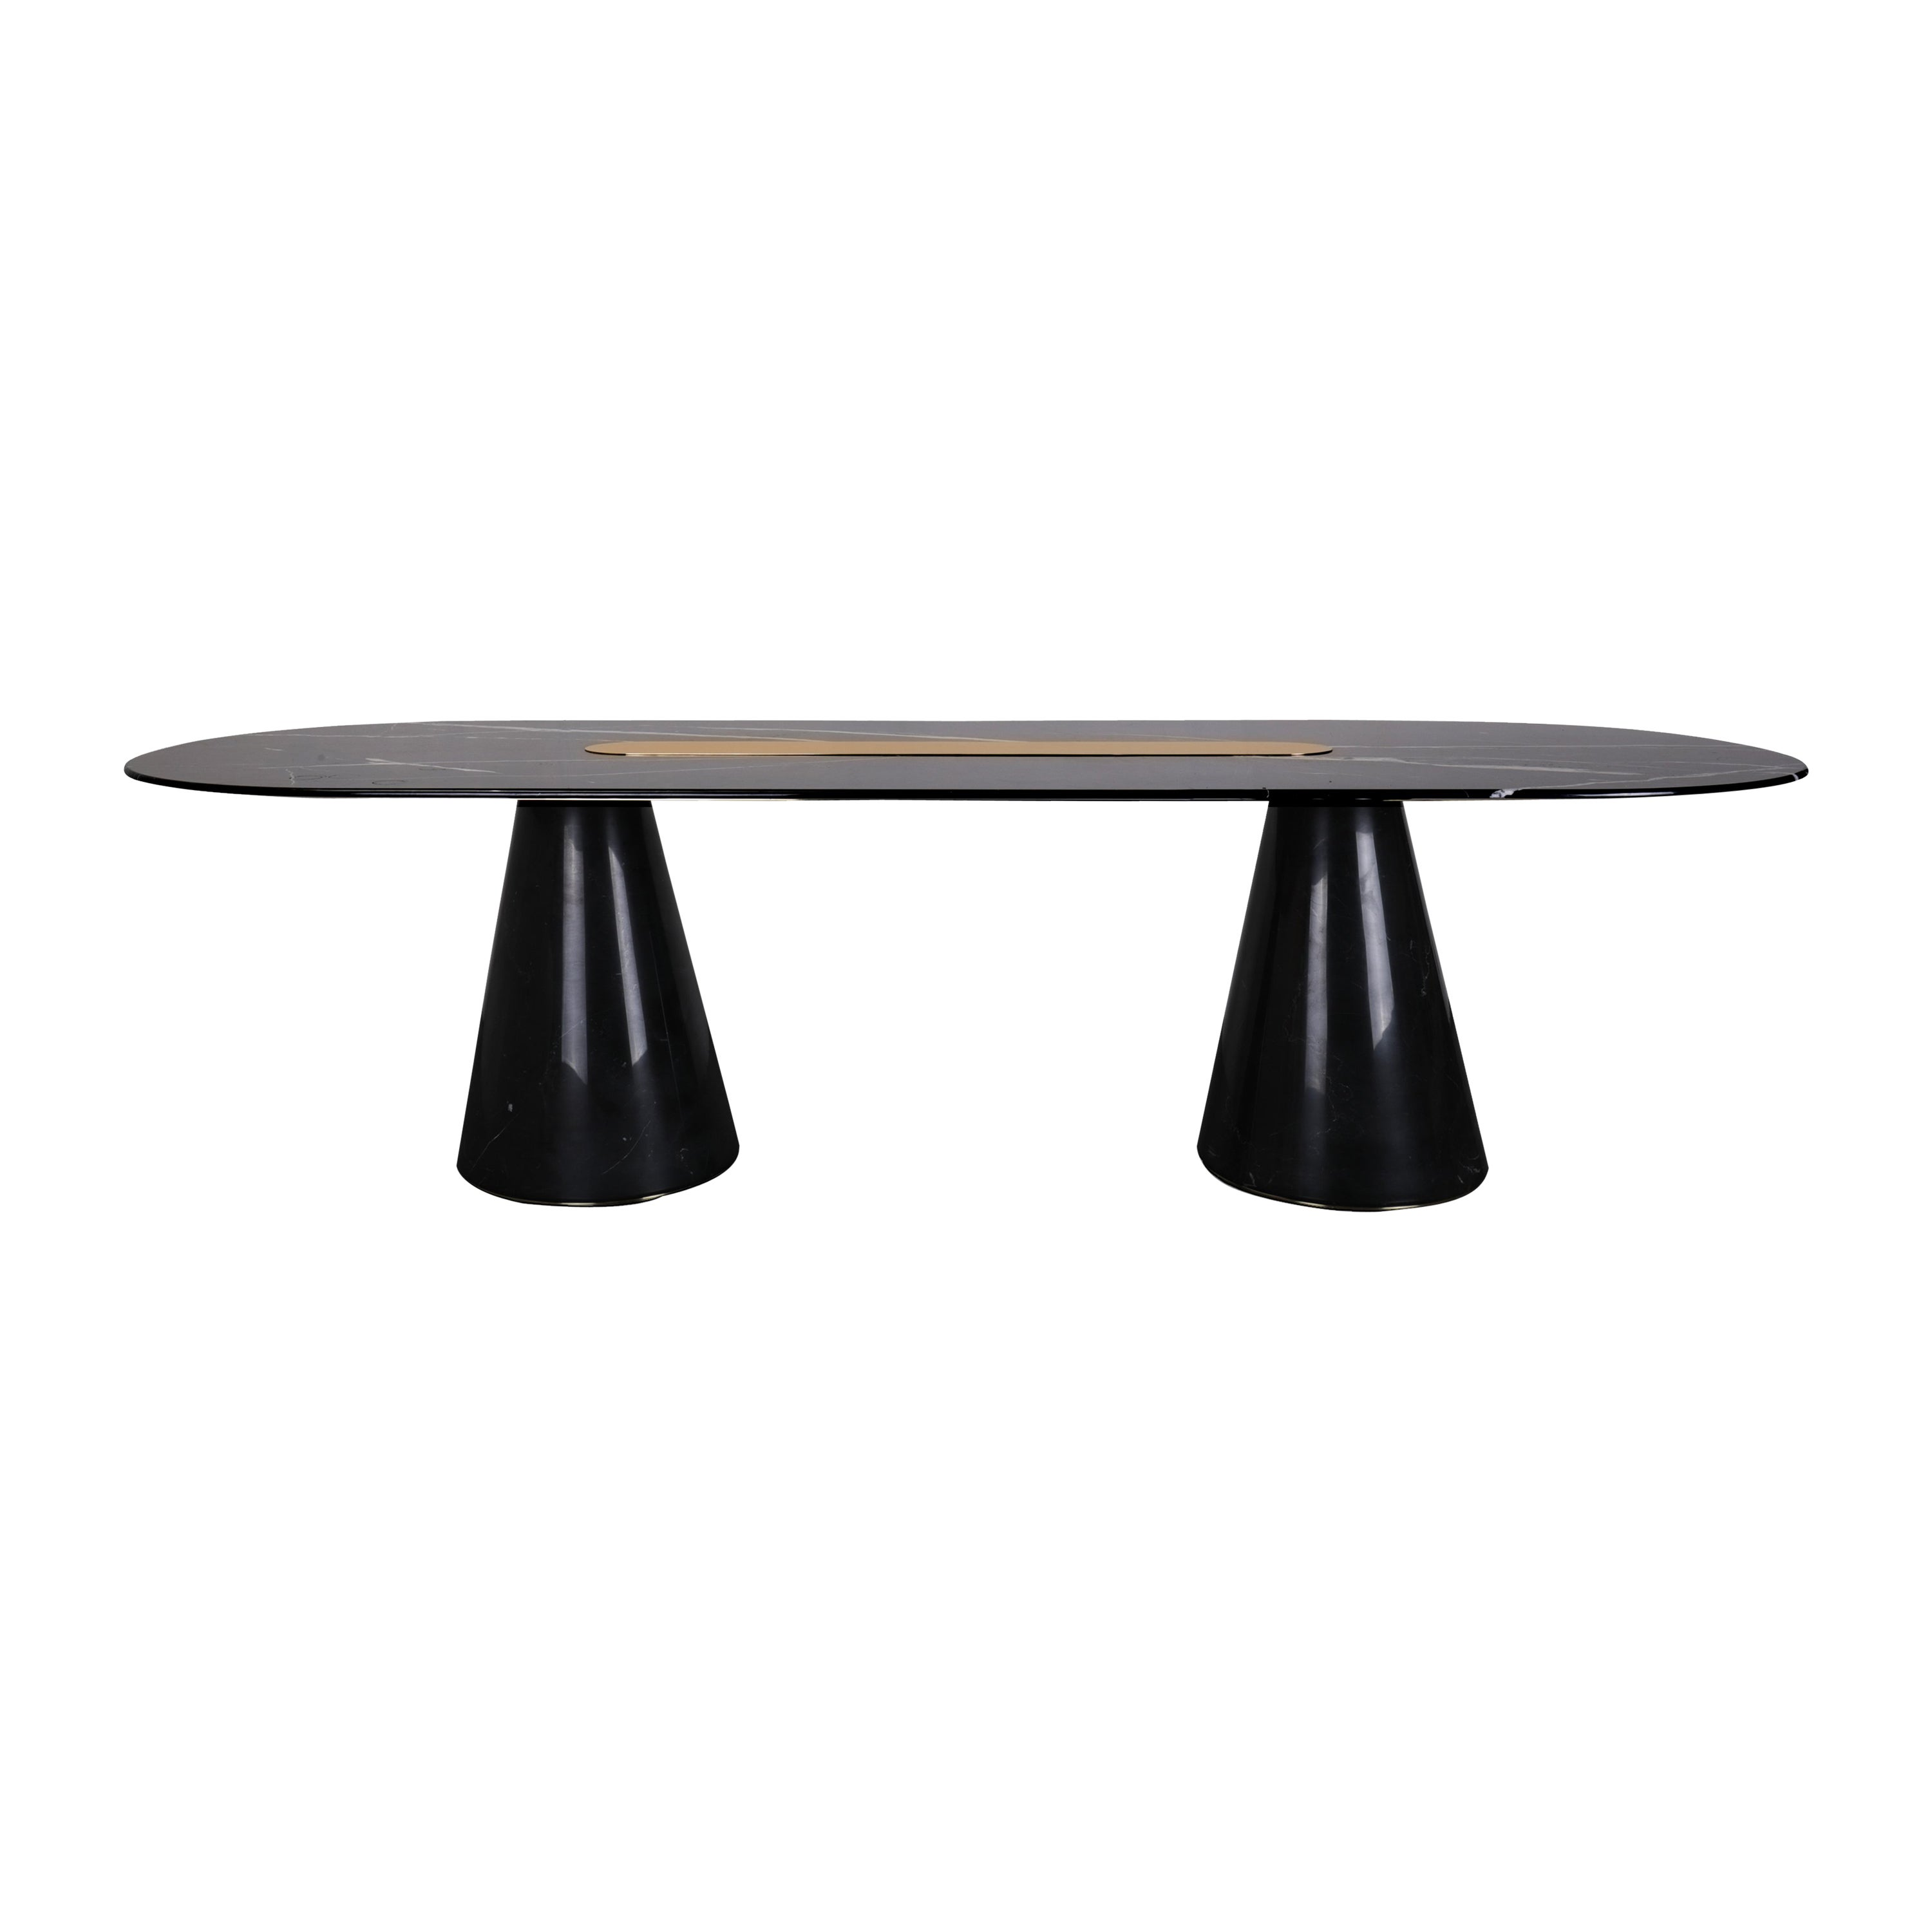 Bertoia Big Dining Table in Nero Marquina Marble